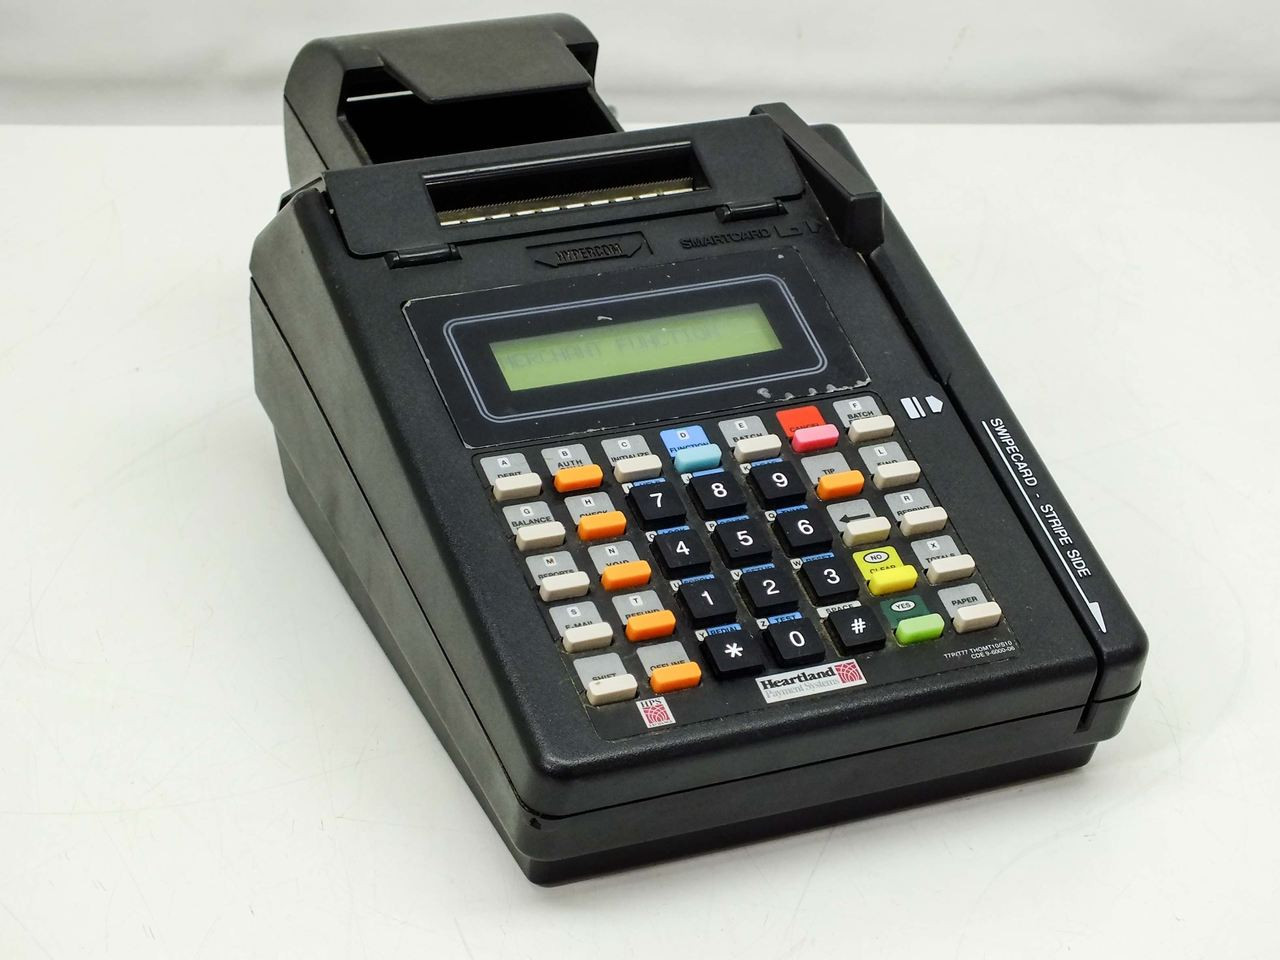 Hypercom Credit Card Reader (T77-F) ...